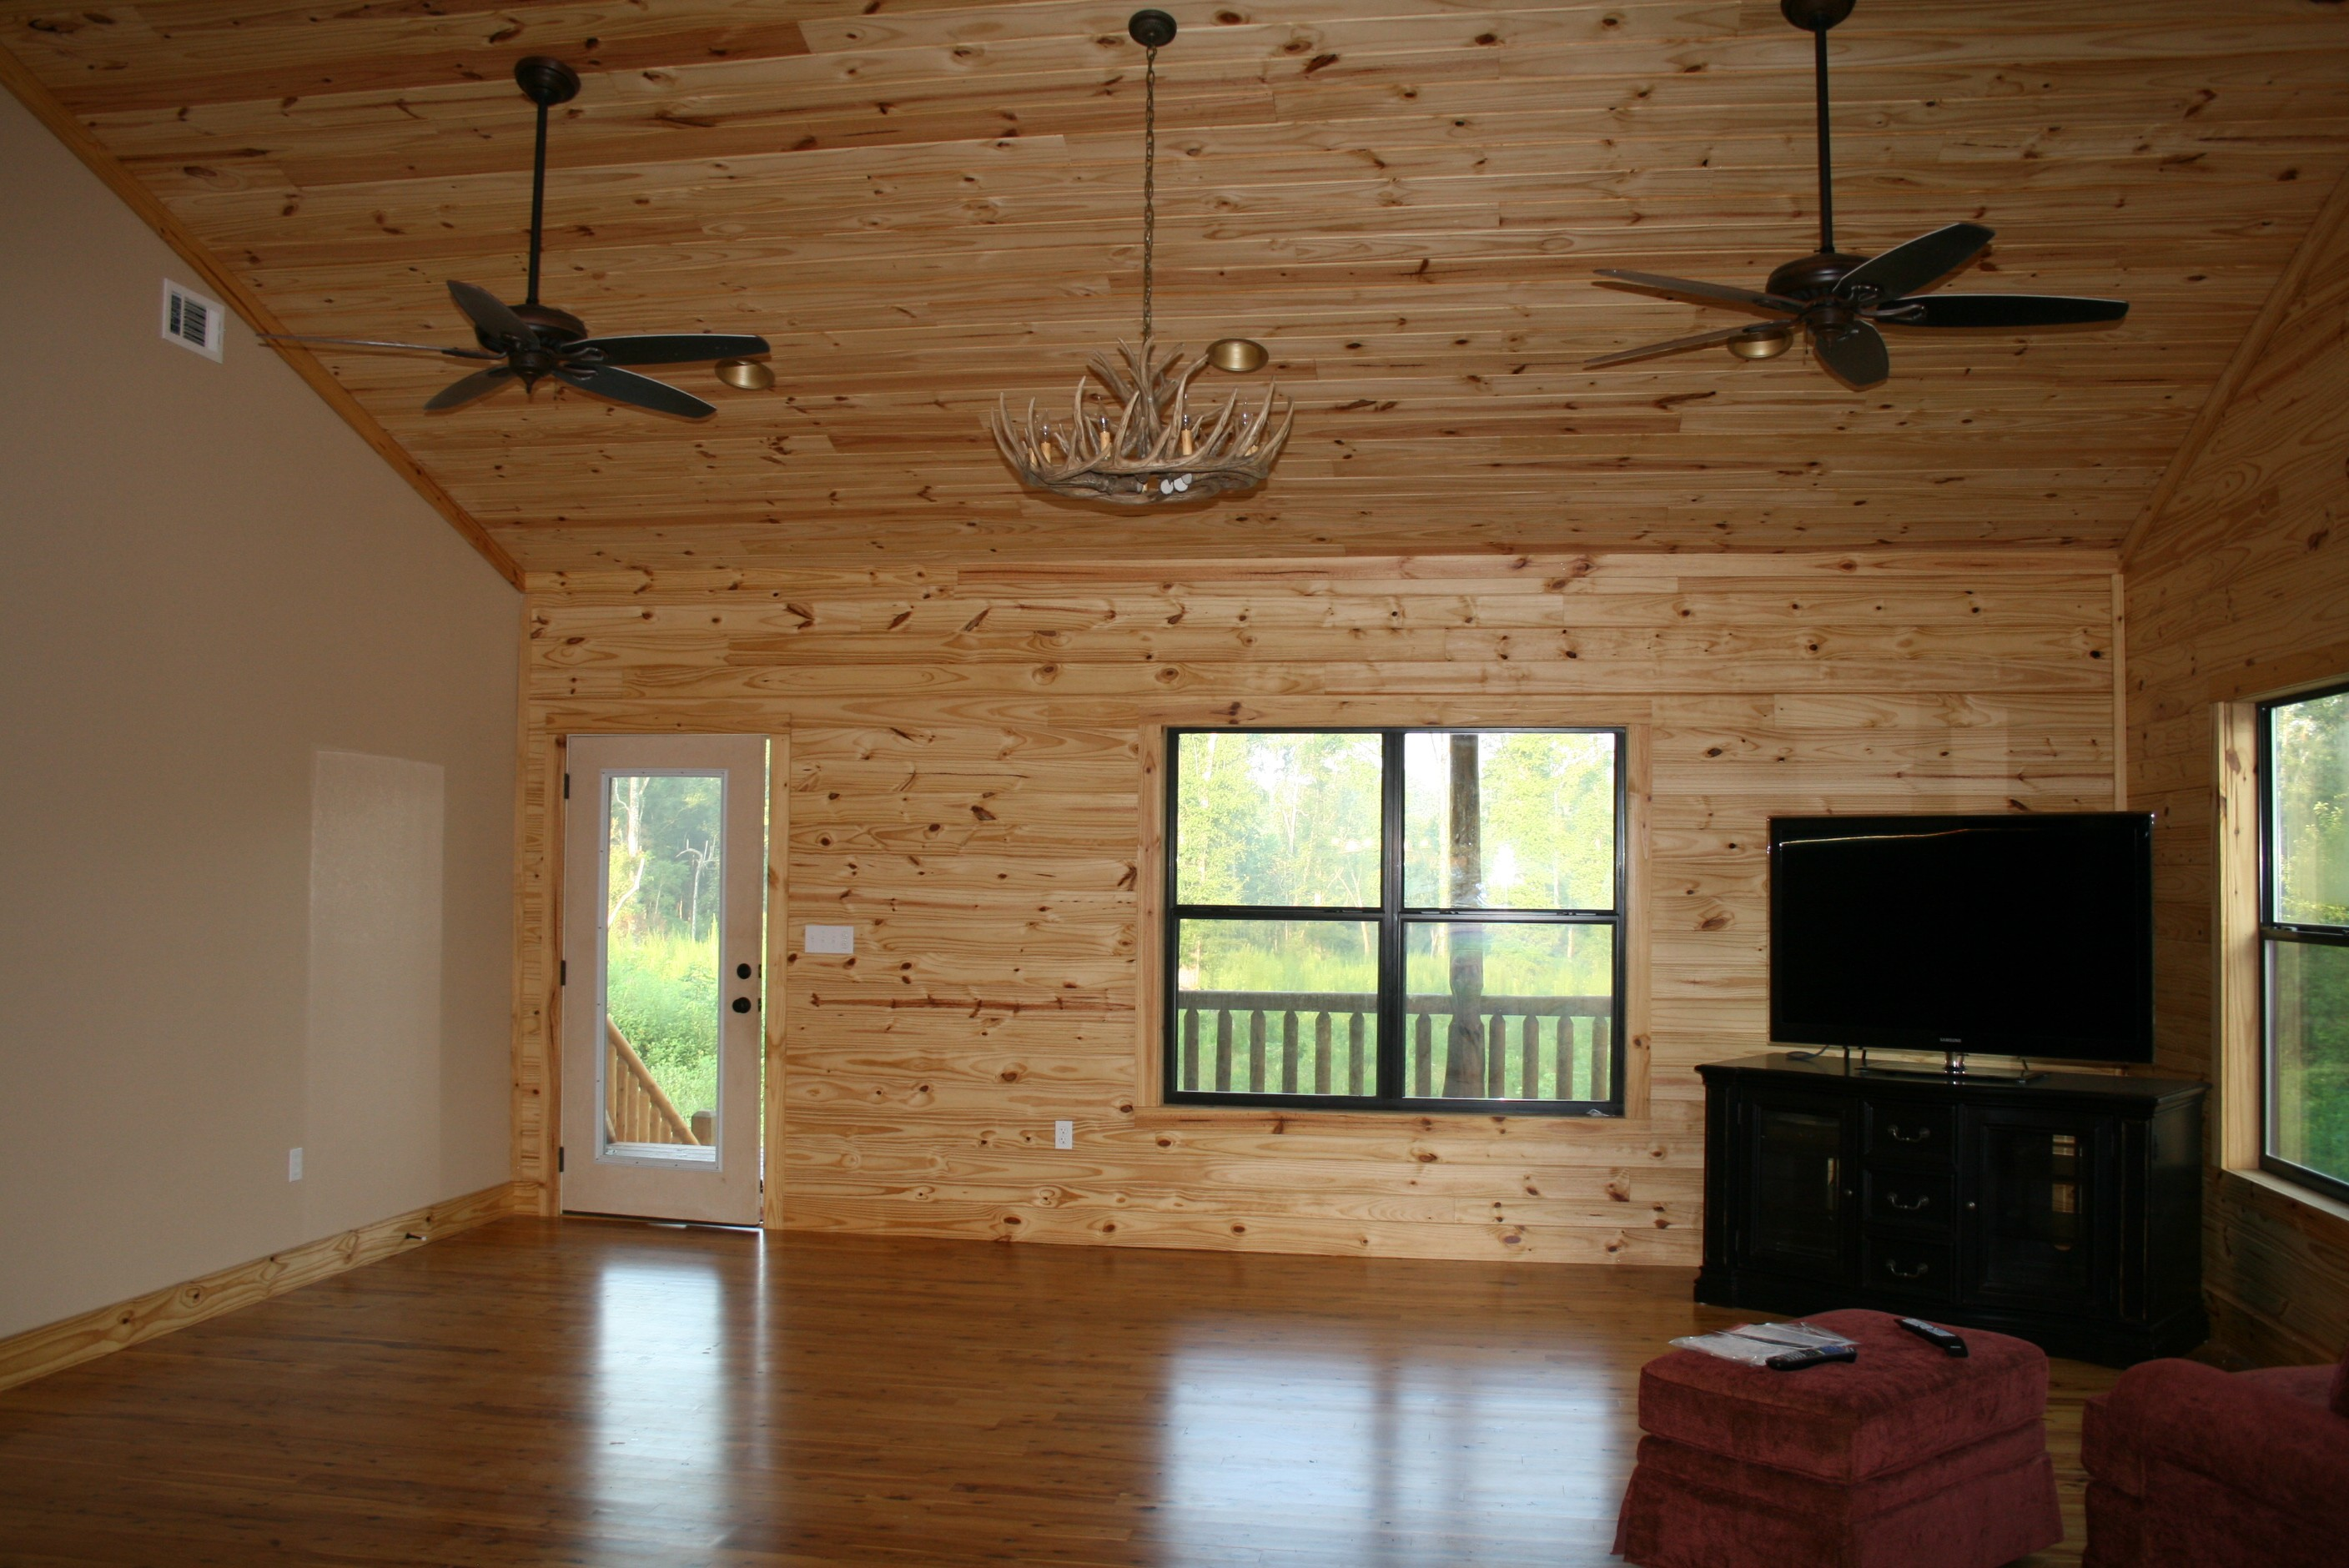 Flooring flint river log homes for Home flooring